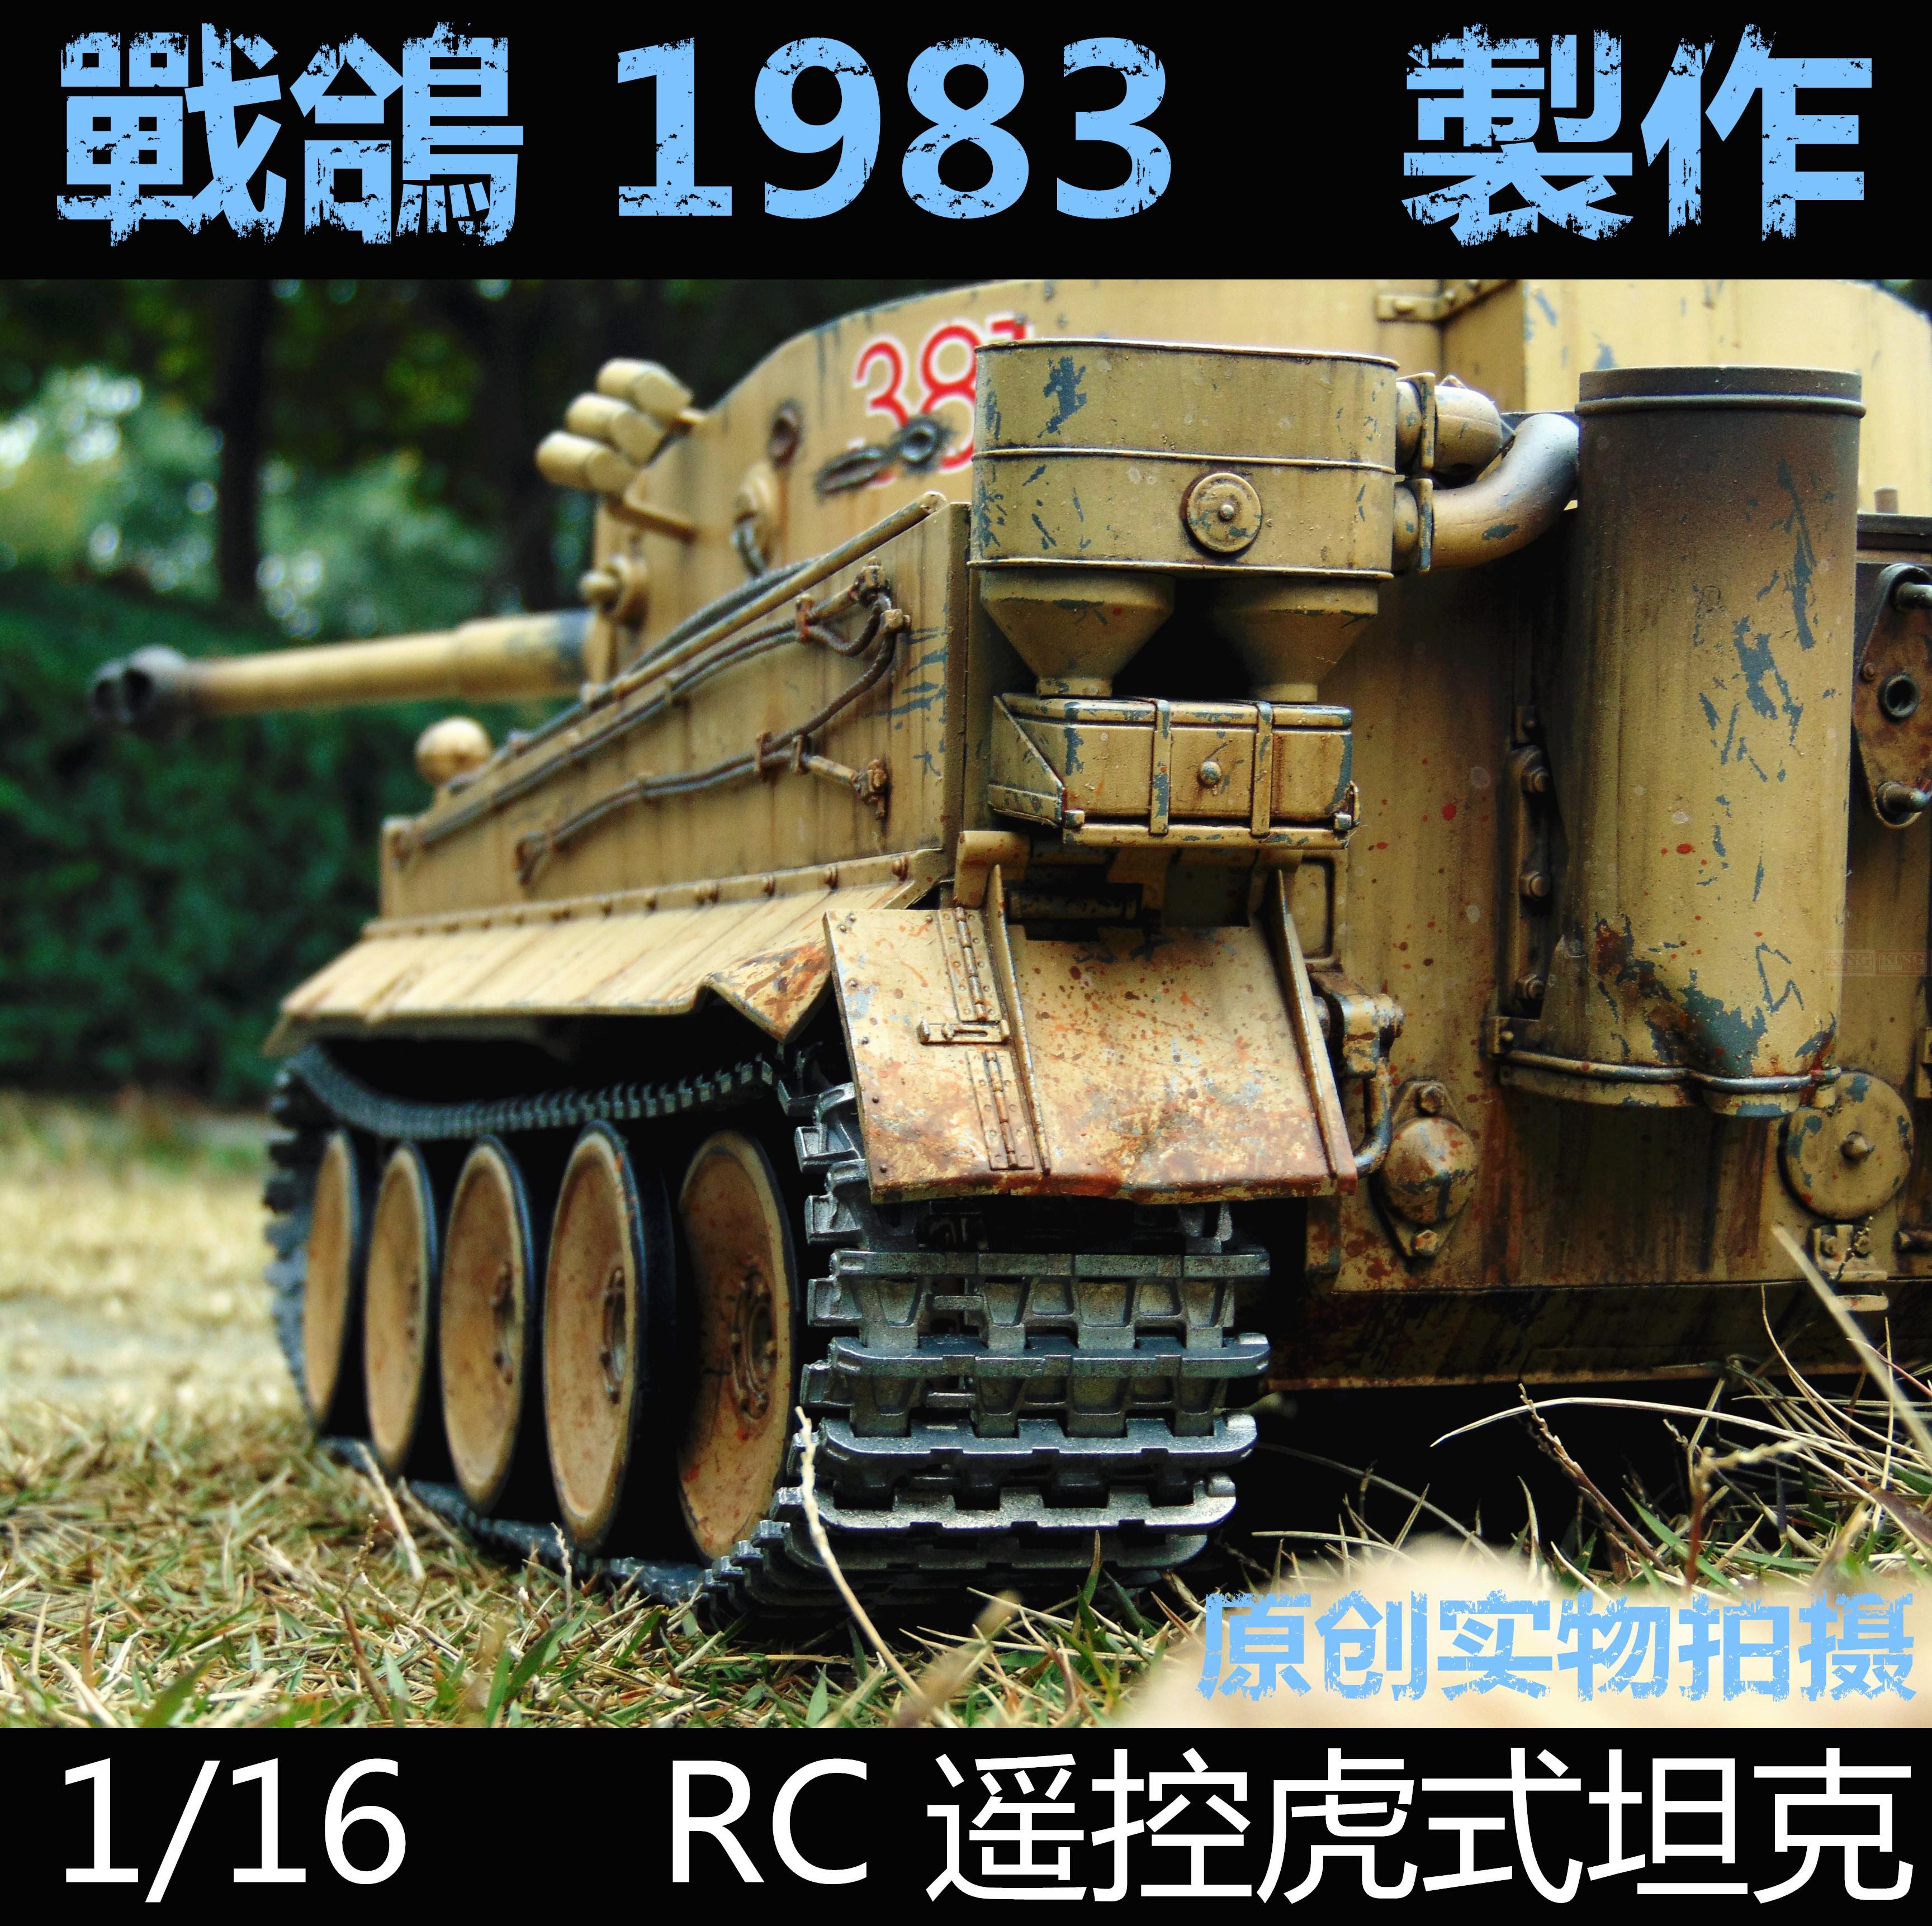 KNL HOBBY <font><b>HENGLONG</b></font> <font><b>1/16</b></font> Tiger <font><b>RC</b></font> <font><b>tank</b></font> model remote control OEM heavy coating of paint to do the old upgrade image